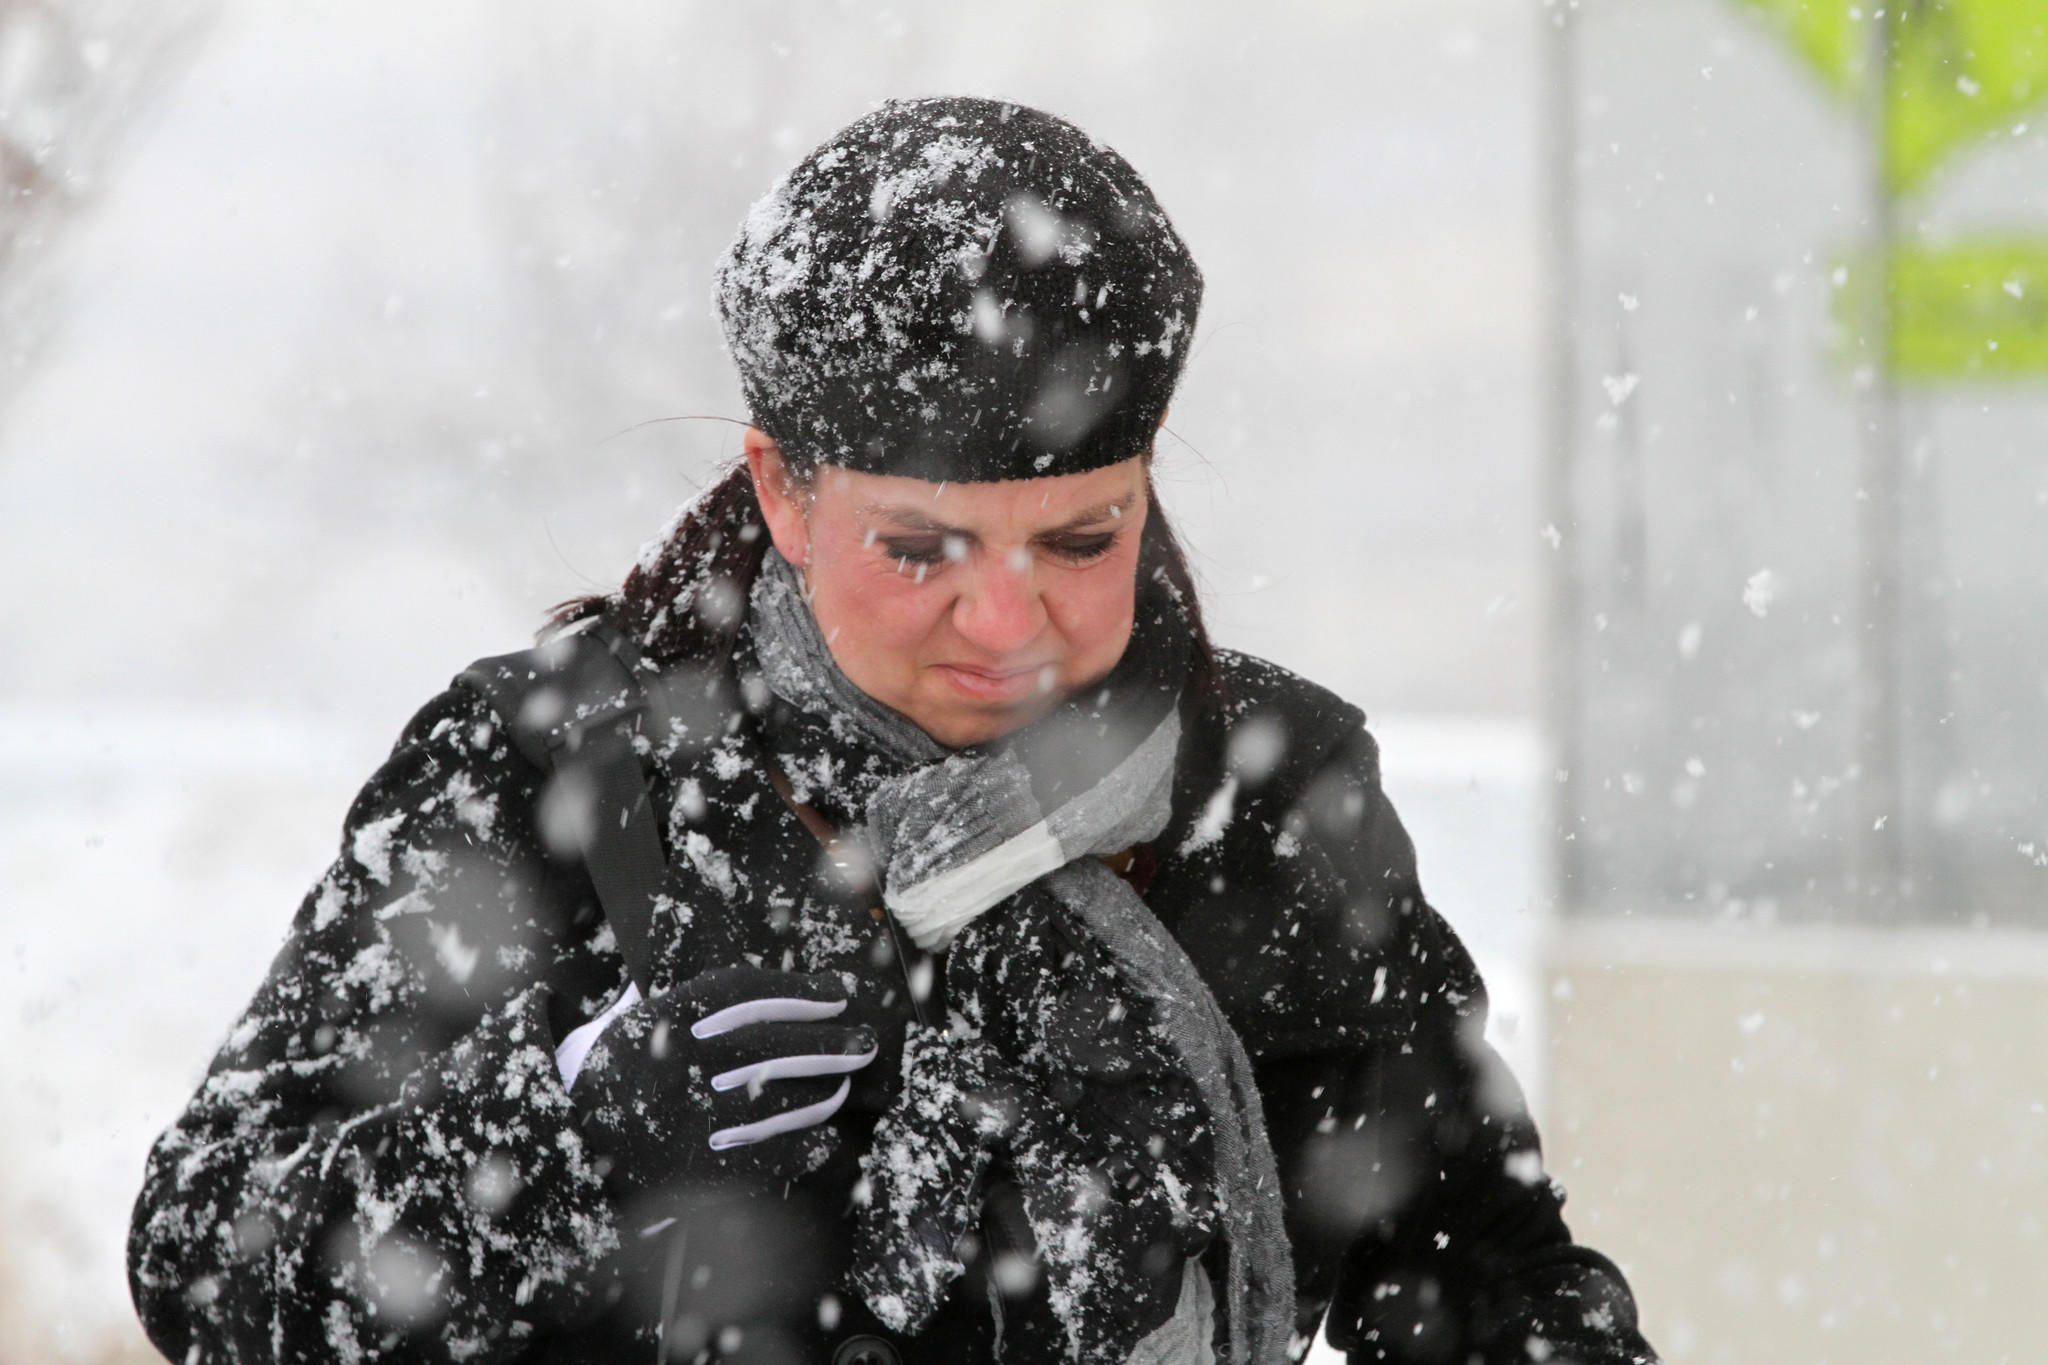 Stacy Espinosa puts her head down in the swirl of fat snow flakes falling again after several snowless days in Naperville.